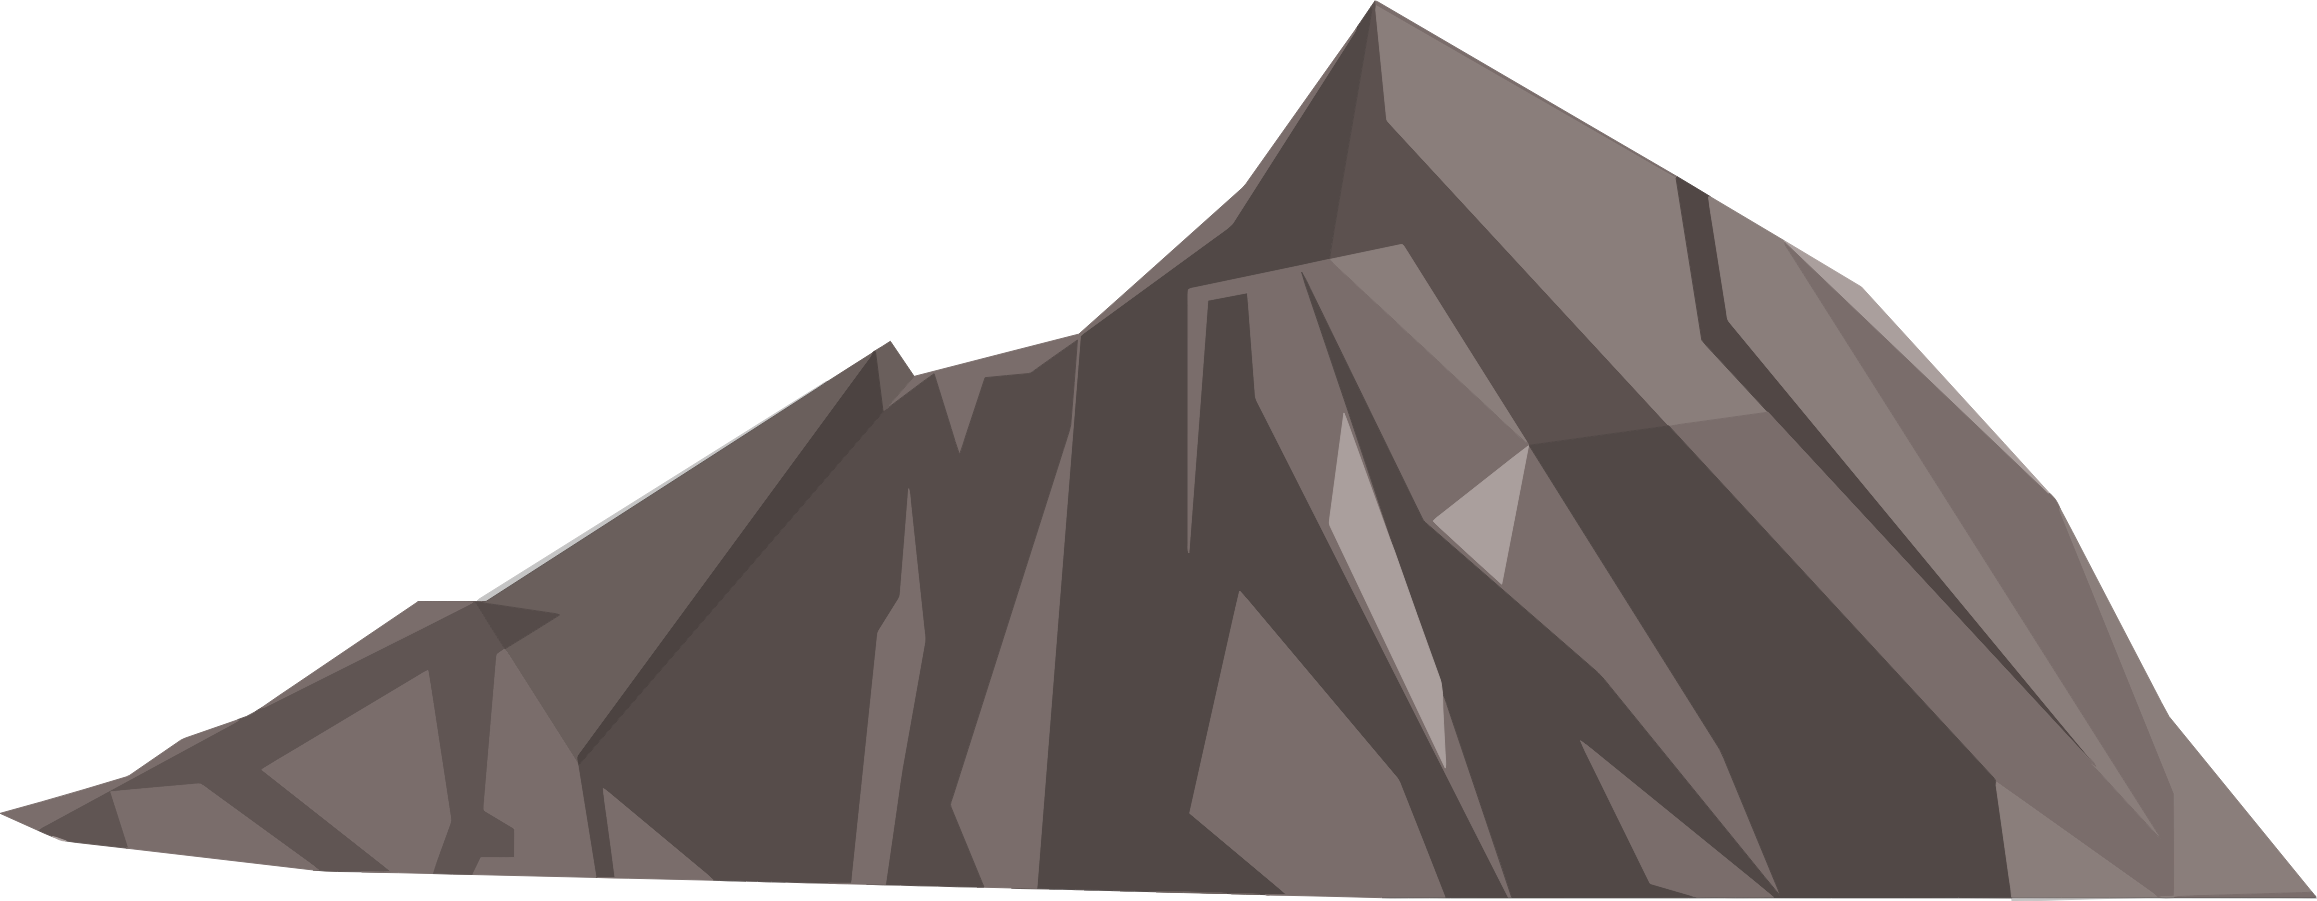 Clipart house mountain picture transparent Clipart - Low Poly Mountain picture transparent